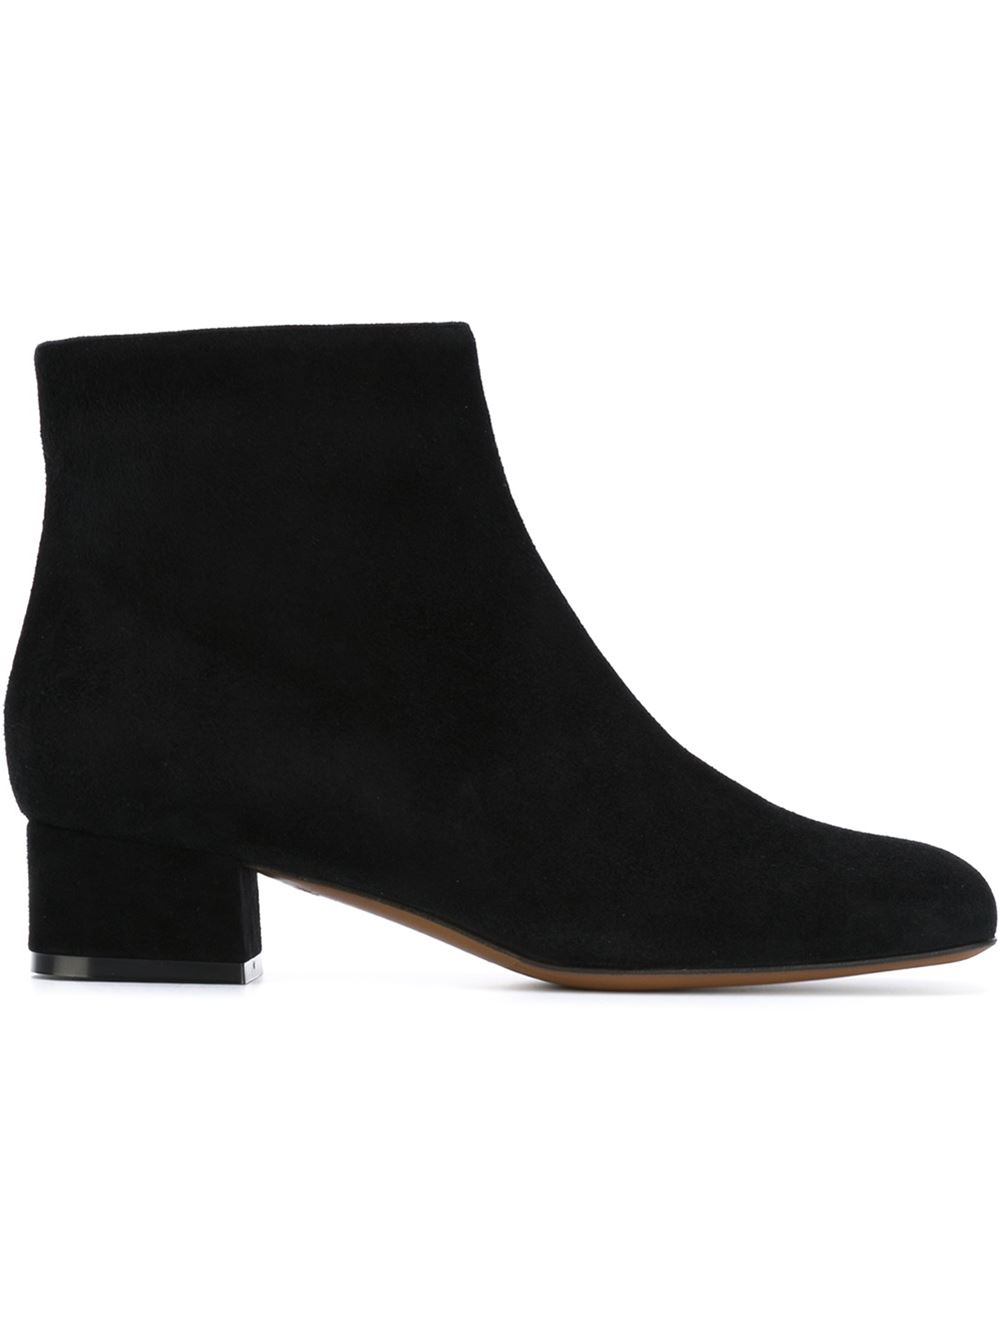 L&39autre chose Low Heel Ankle Boots in Black | Lyst